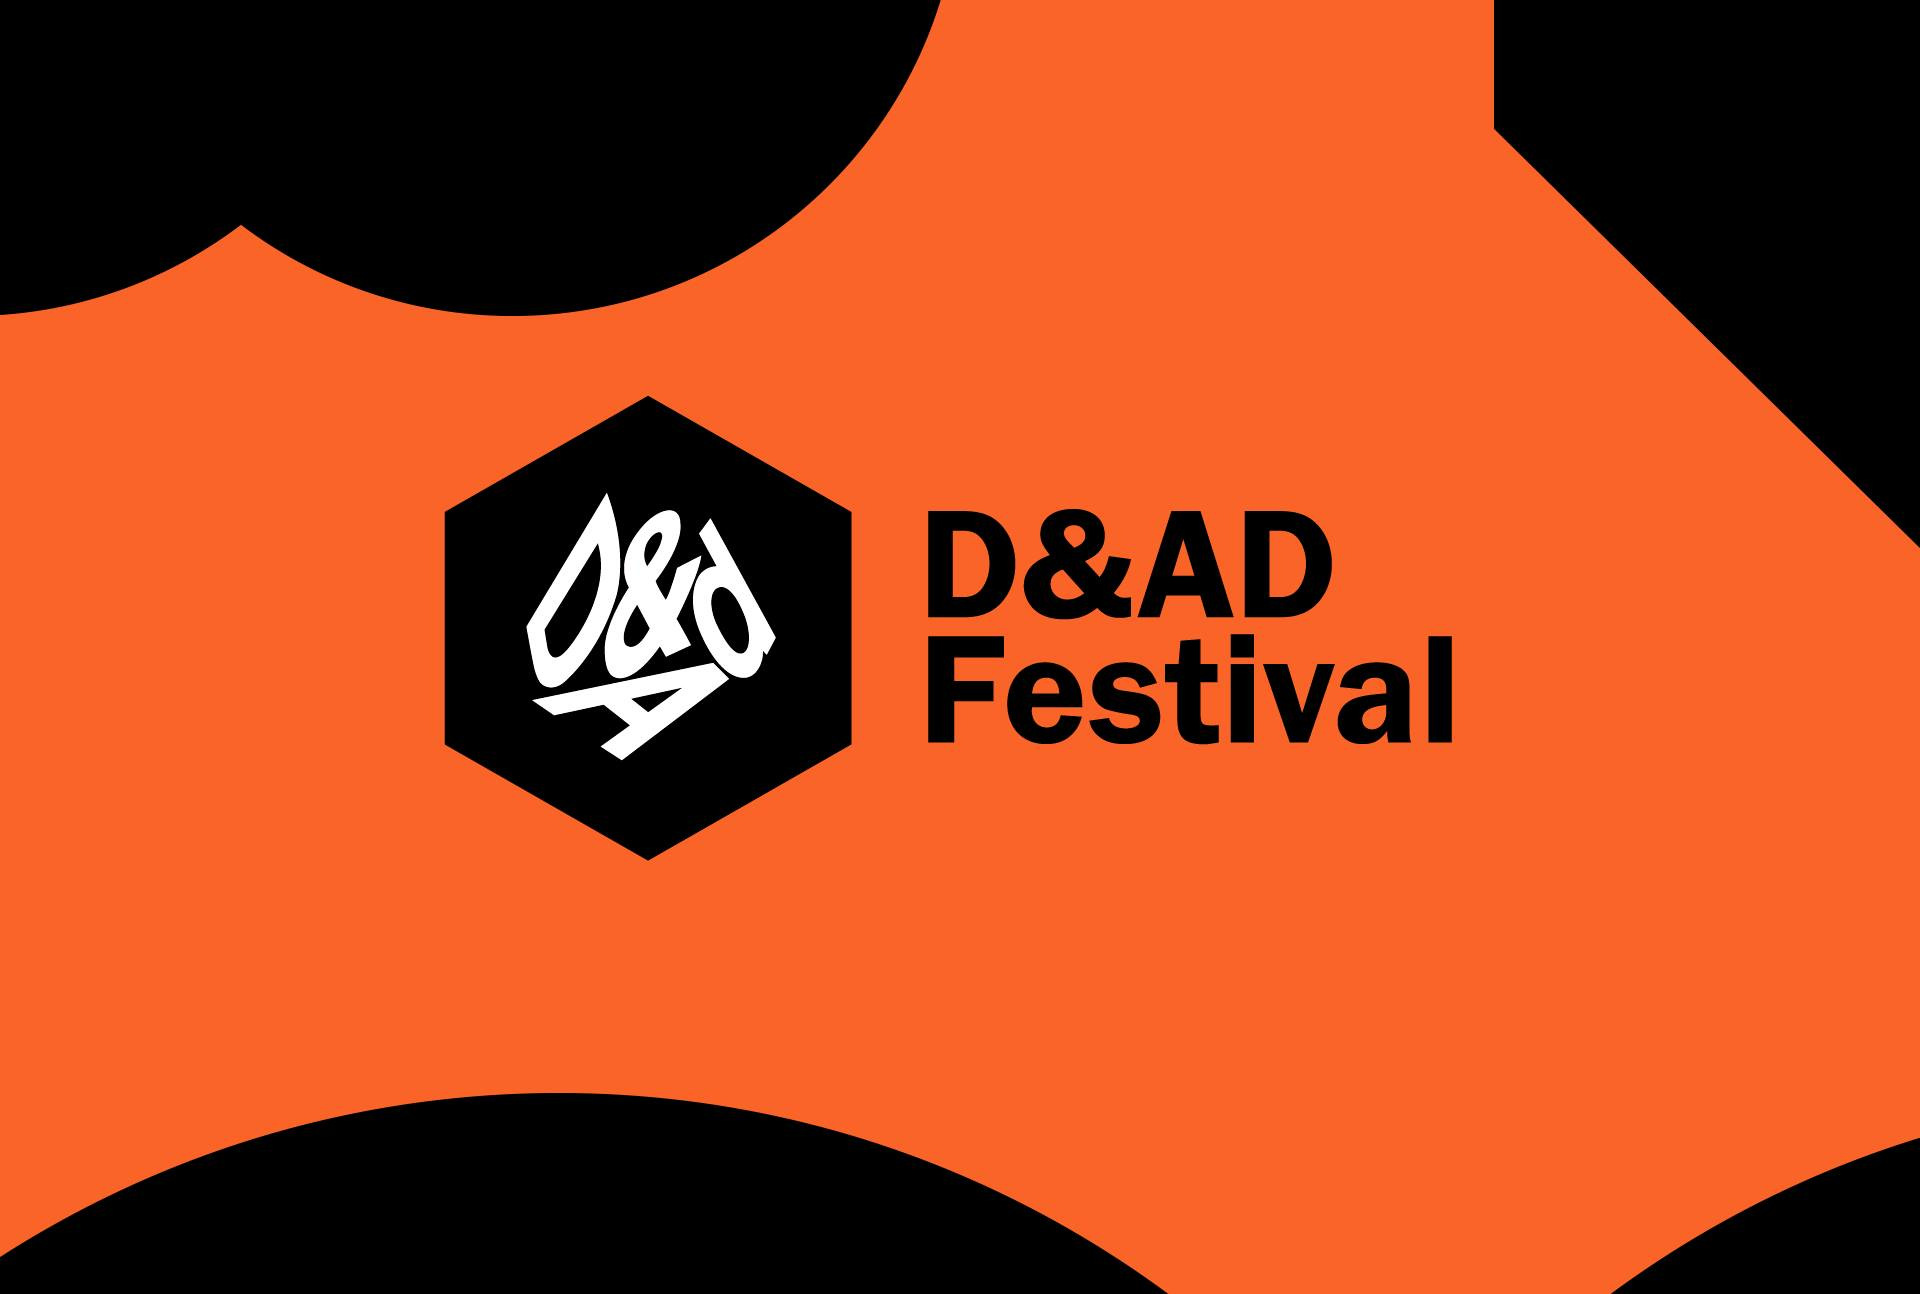 D&AD reveals headline speakers for 2019 Festival